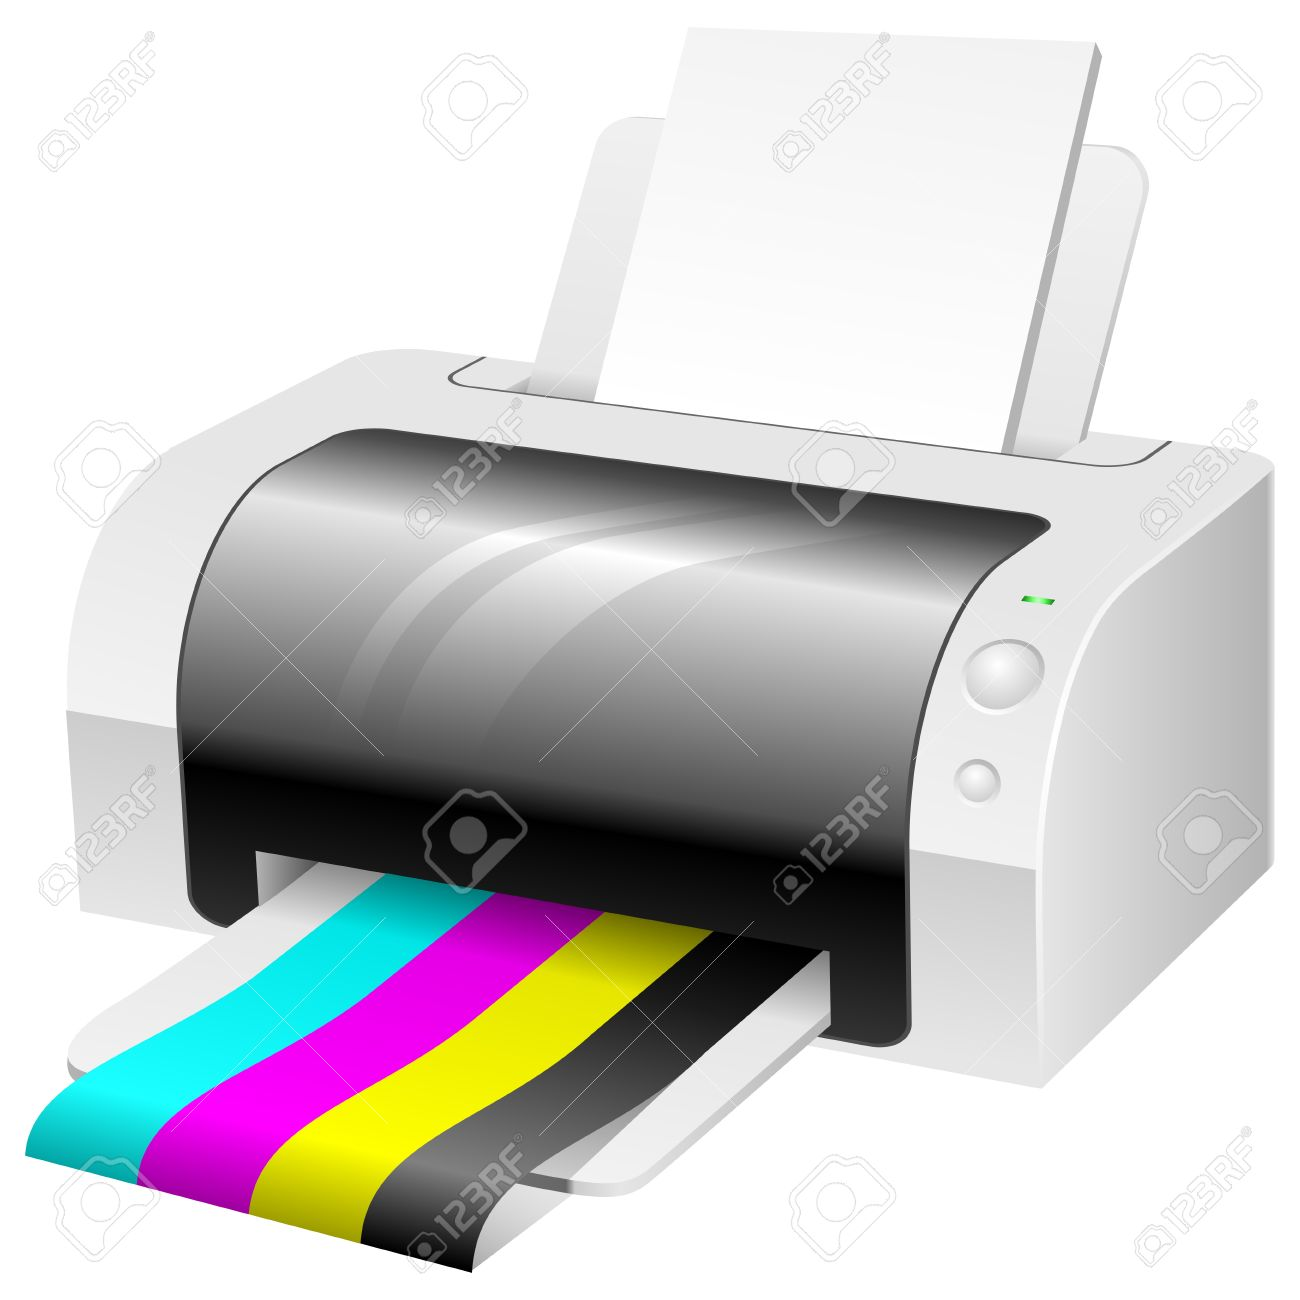 Color printing paper - Modern Color Printer With Cmyk Colored Paper Stock Vector 17916044